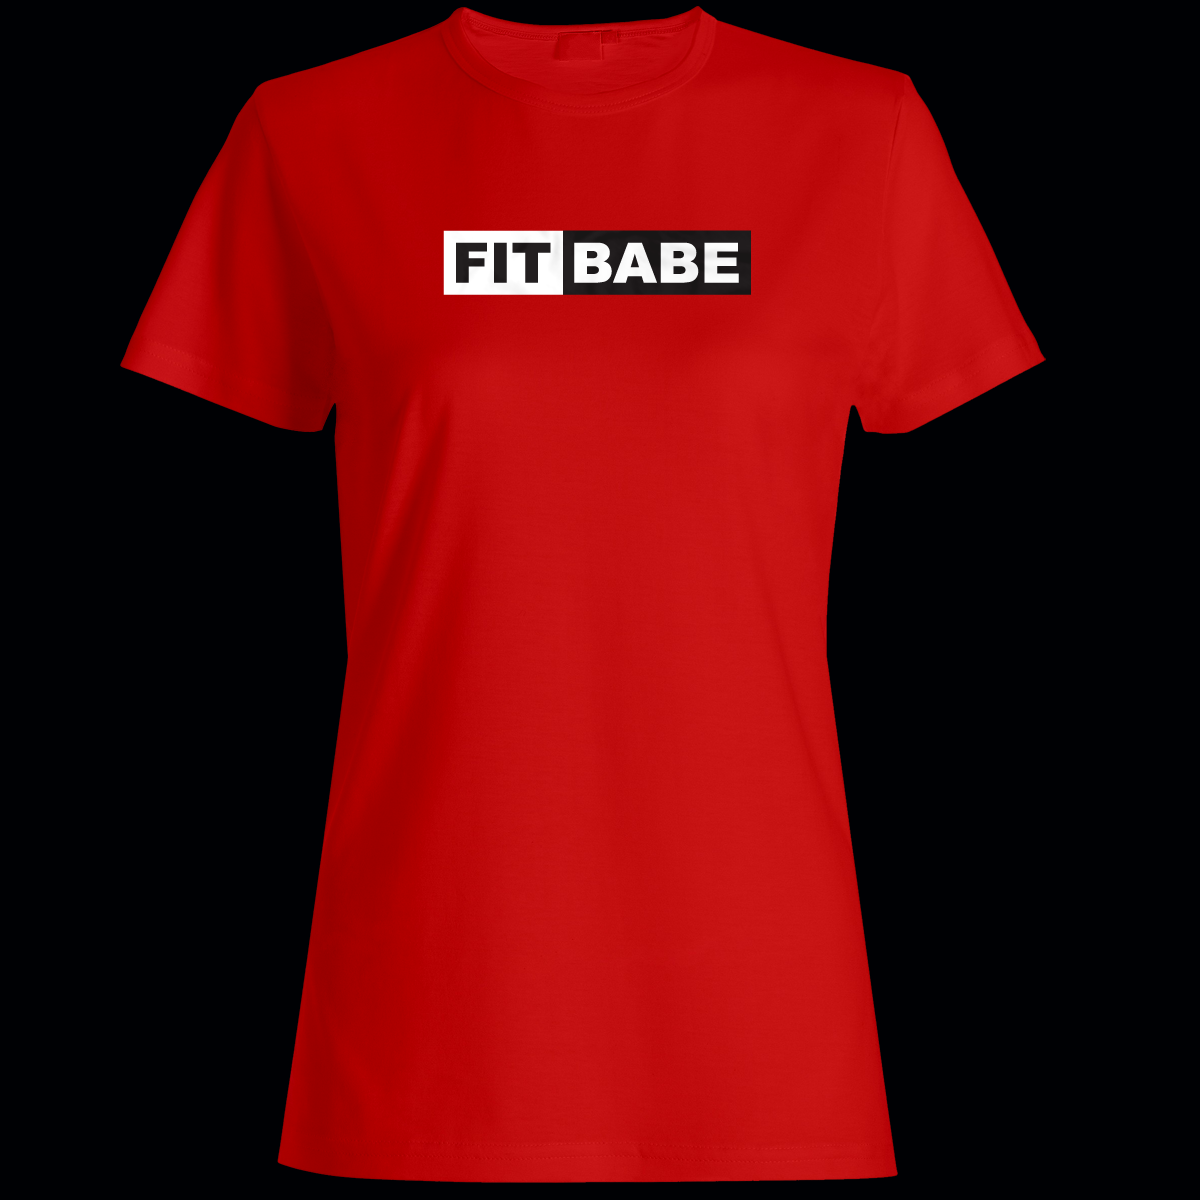 Ladies Fit Babe Tees Conquer Fitness